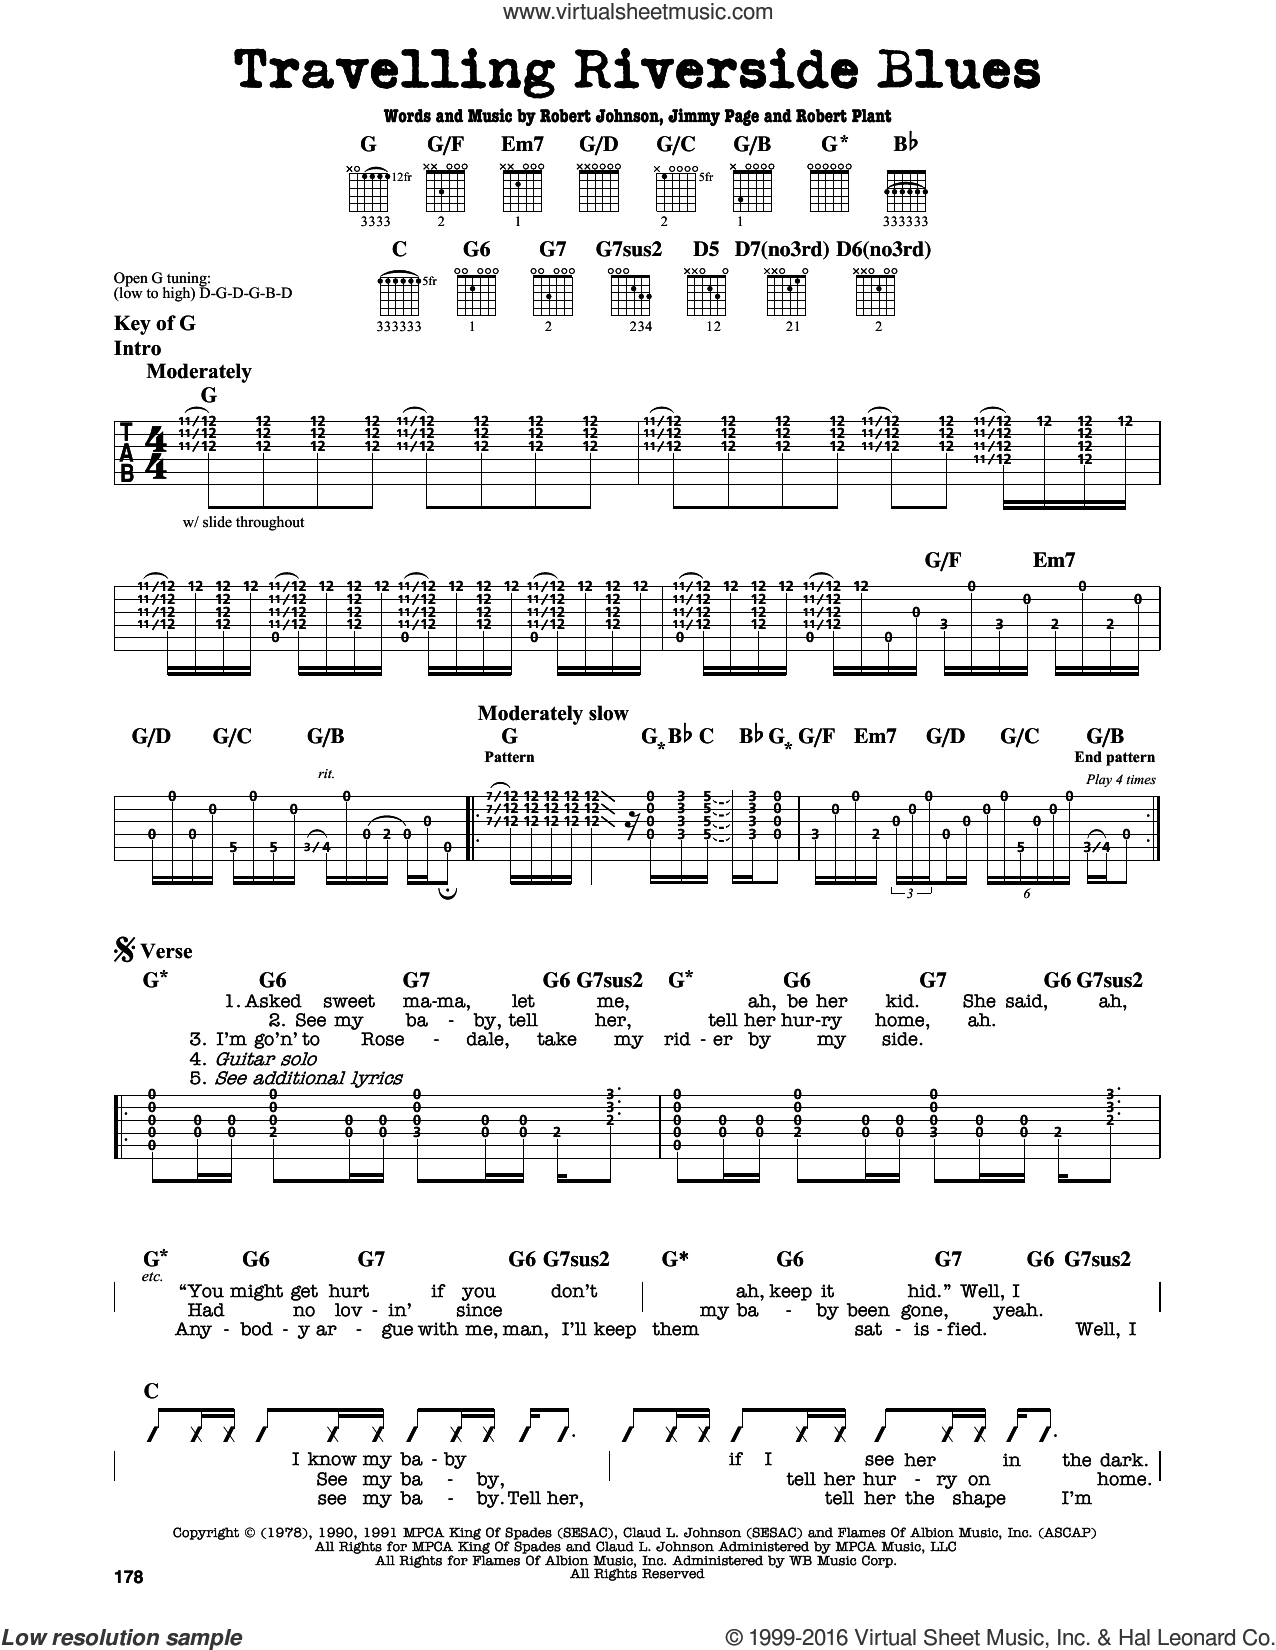 Travelling Riverside Blues sheet music for guitar solo (lead sheet) by Robert Plant